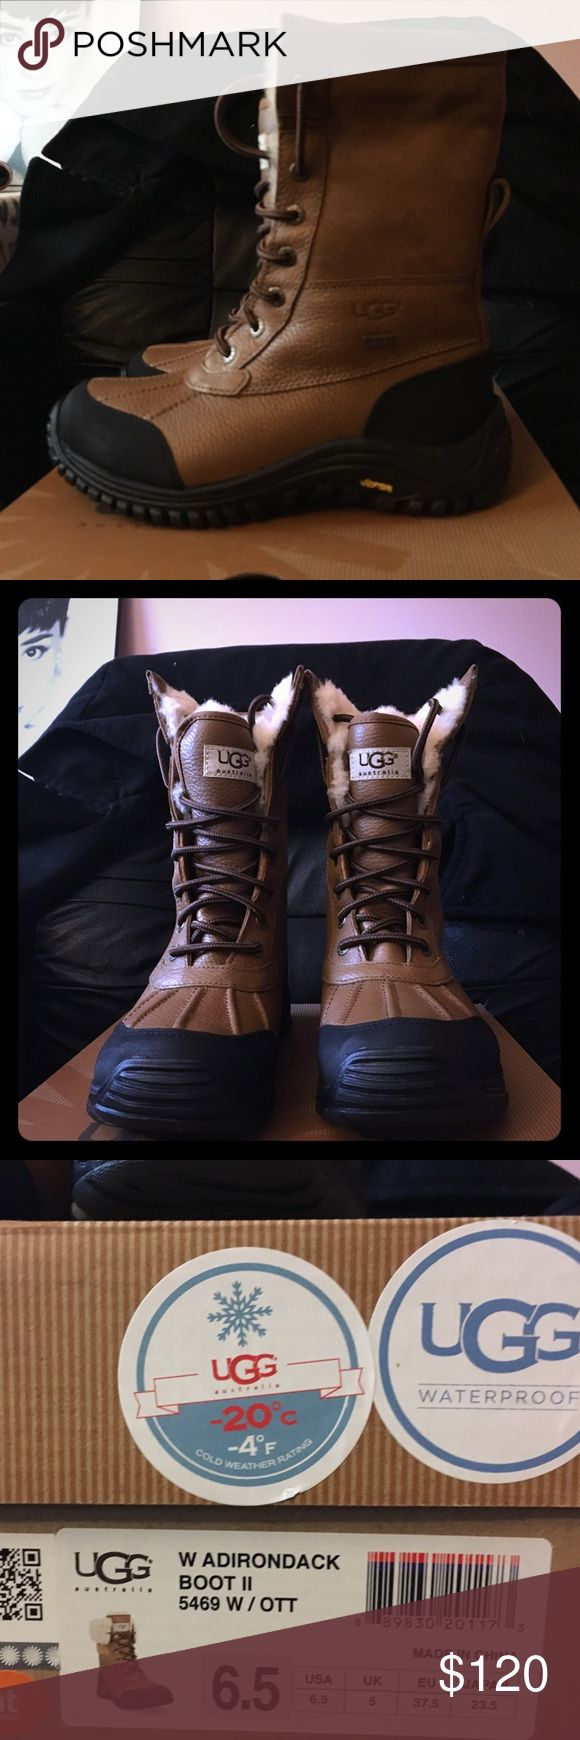 UGG Adirondack Boot II size 6.5 Waterproof boot, size 6.5, color code OTT, brand new, never been worn, still have the original box. UGG Shoes Winter & Rain Boots